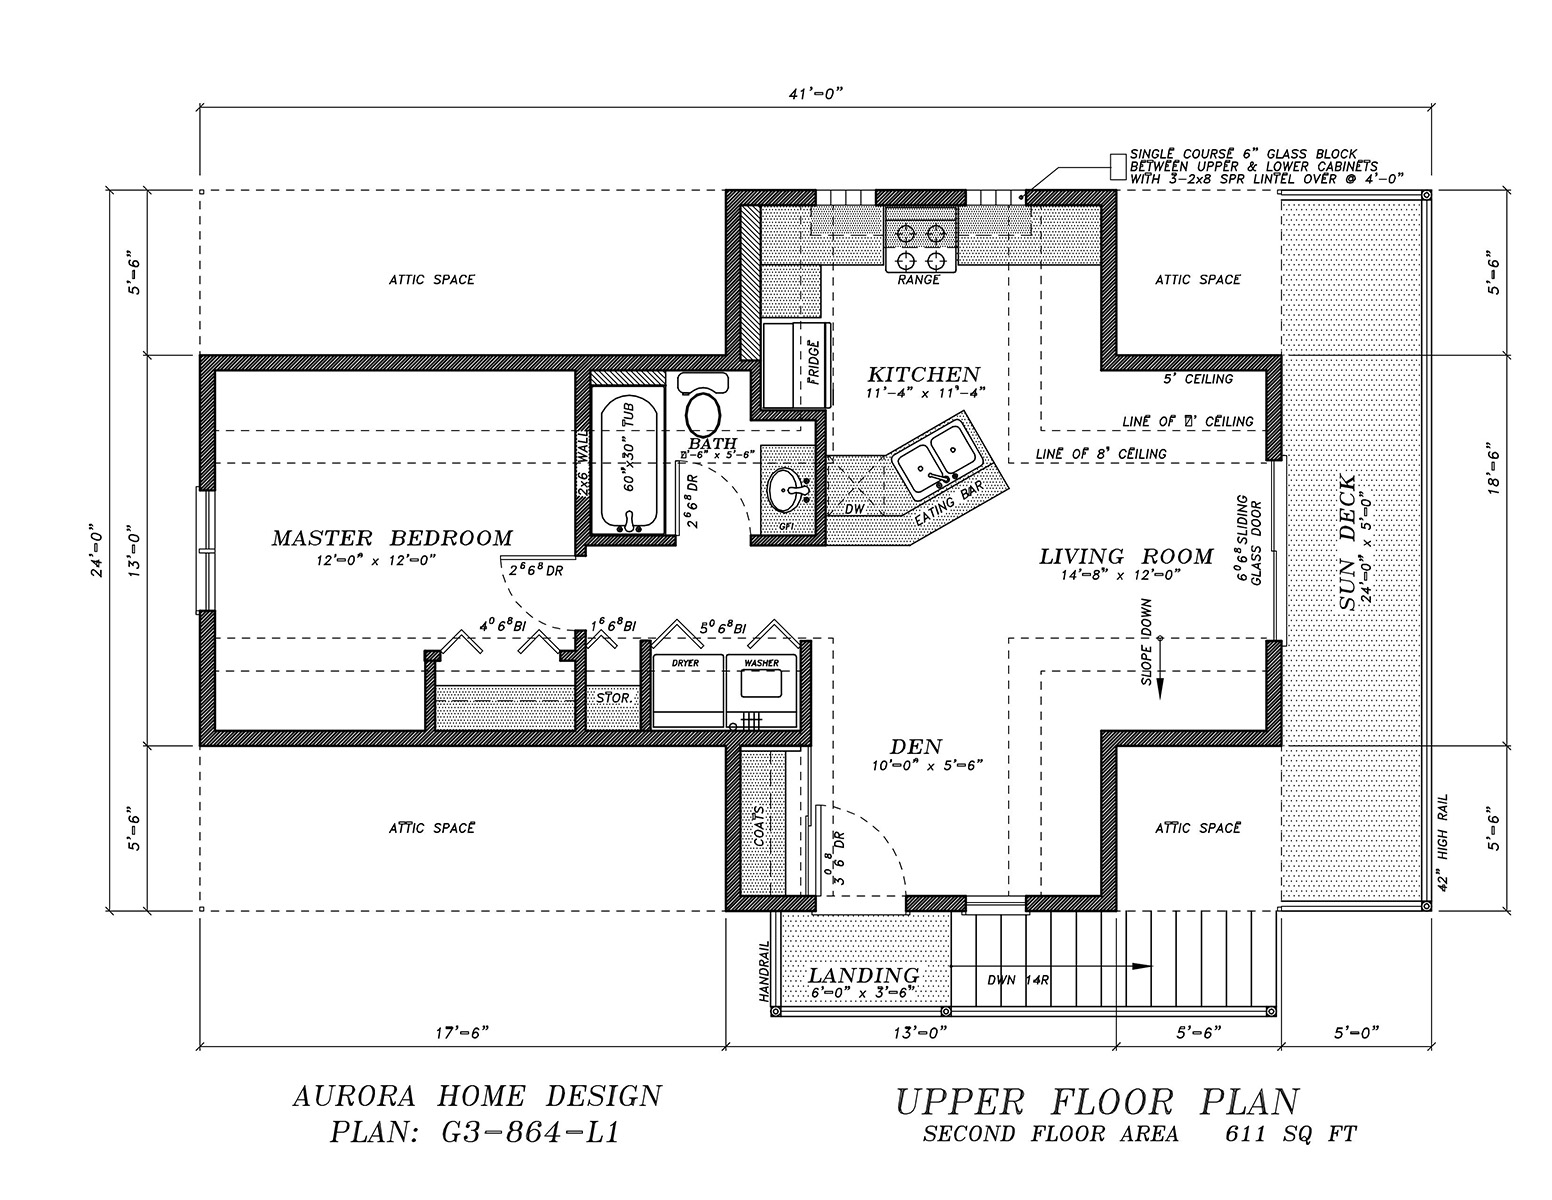 Loft with 1 bedroom suite over 3 garage. | Edmonton Aurora Home Design Plan